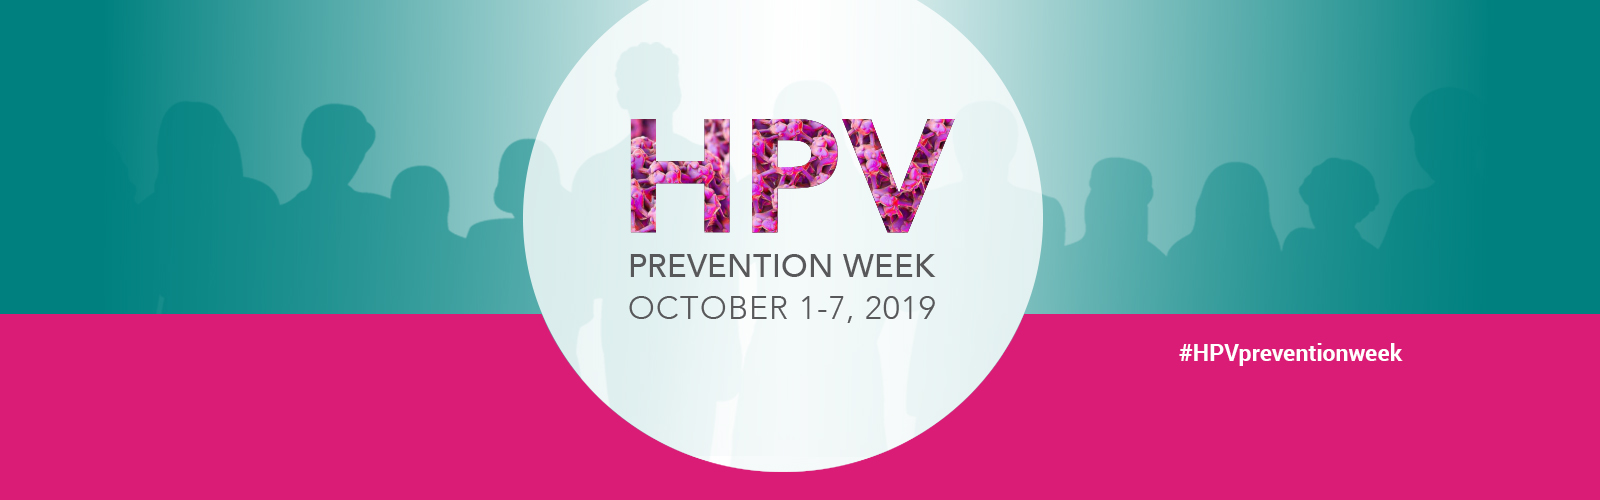 hpv prevention week canada